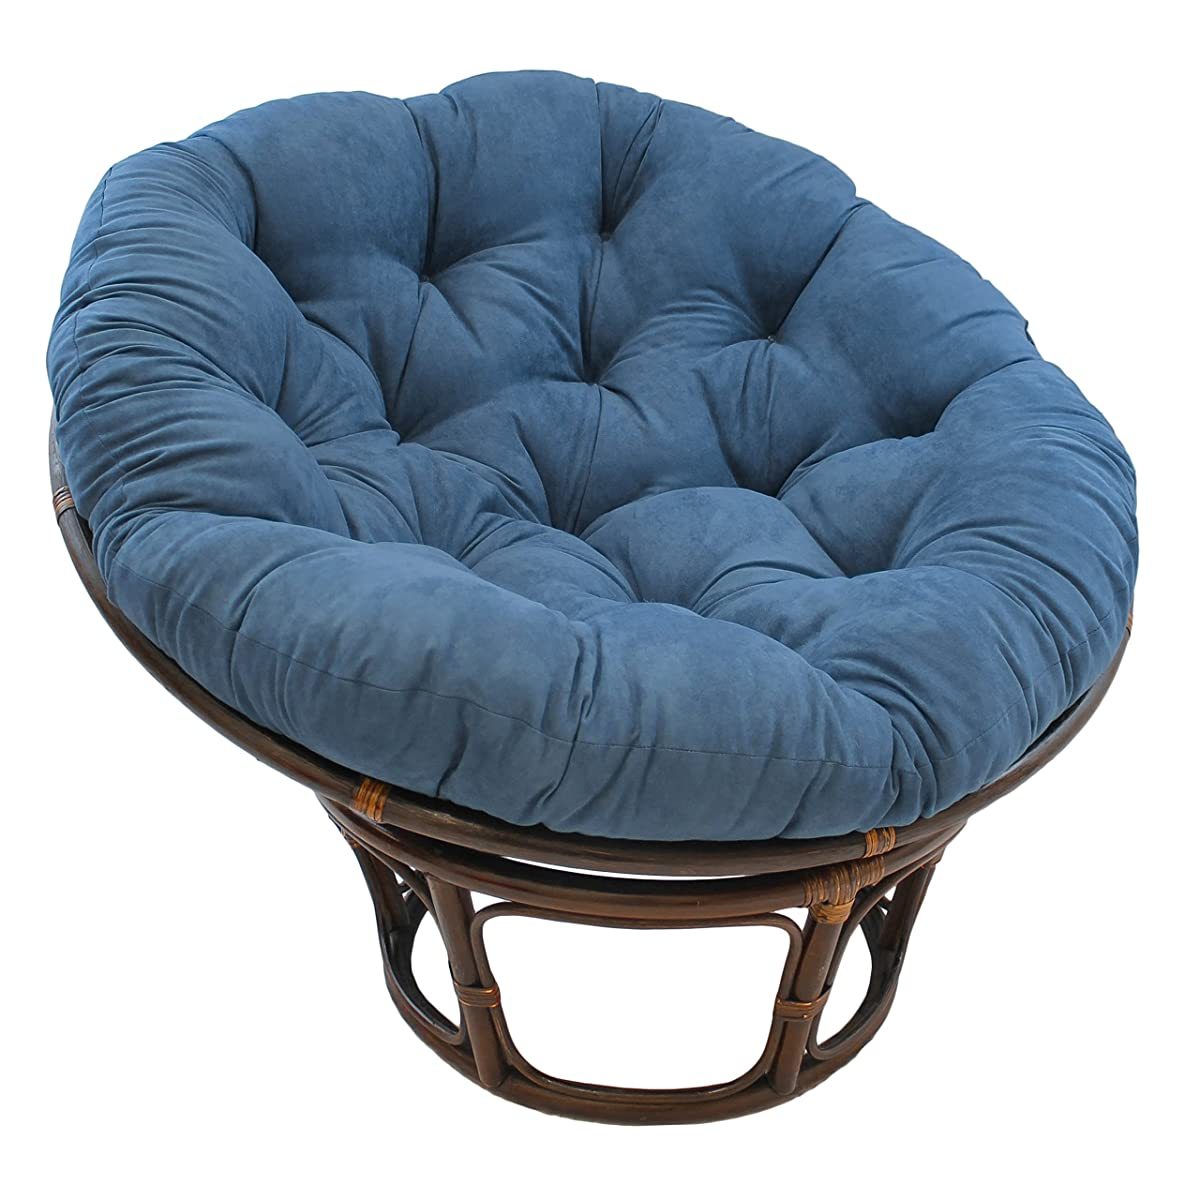 "Blazing Needles Solid Microsuede Papasan Chair Cushion, 48"" x 6"" x 48"", Indigo"